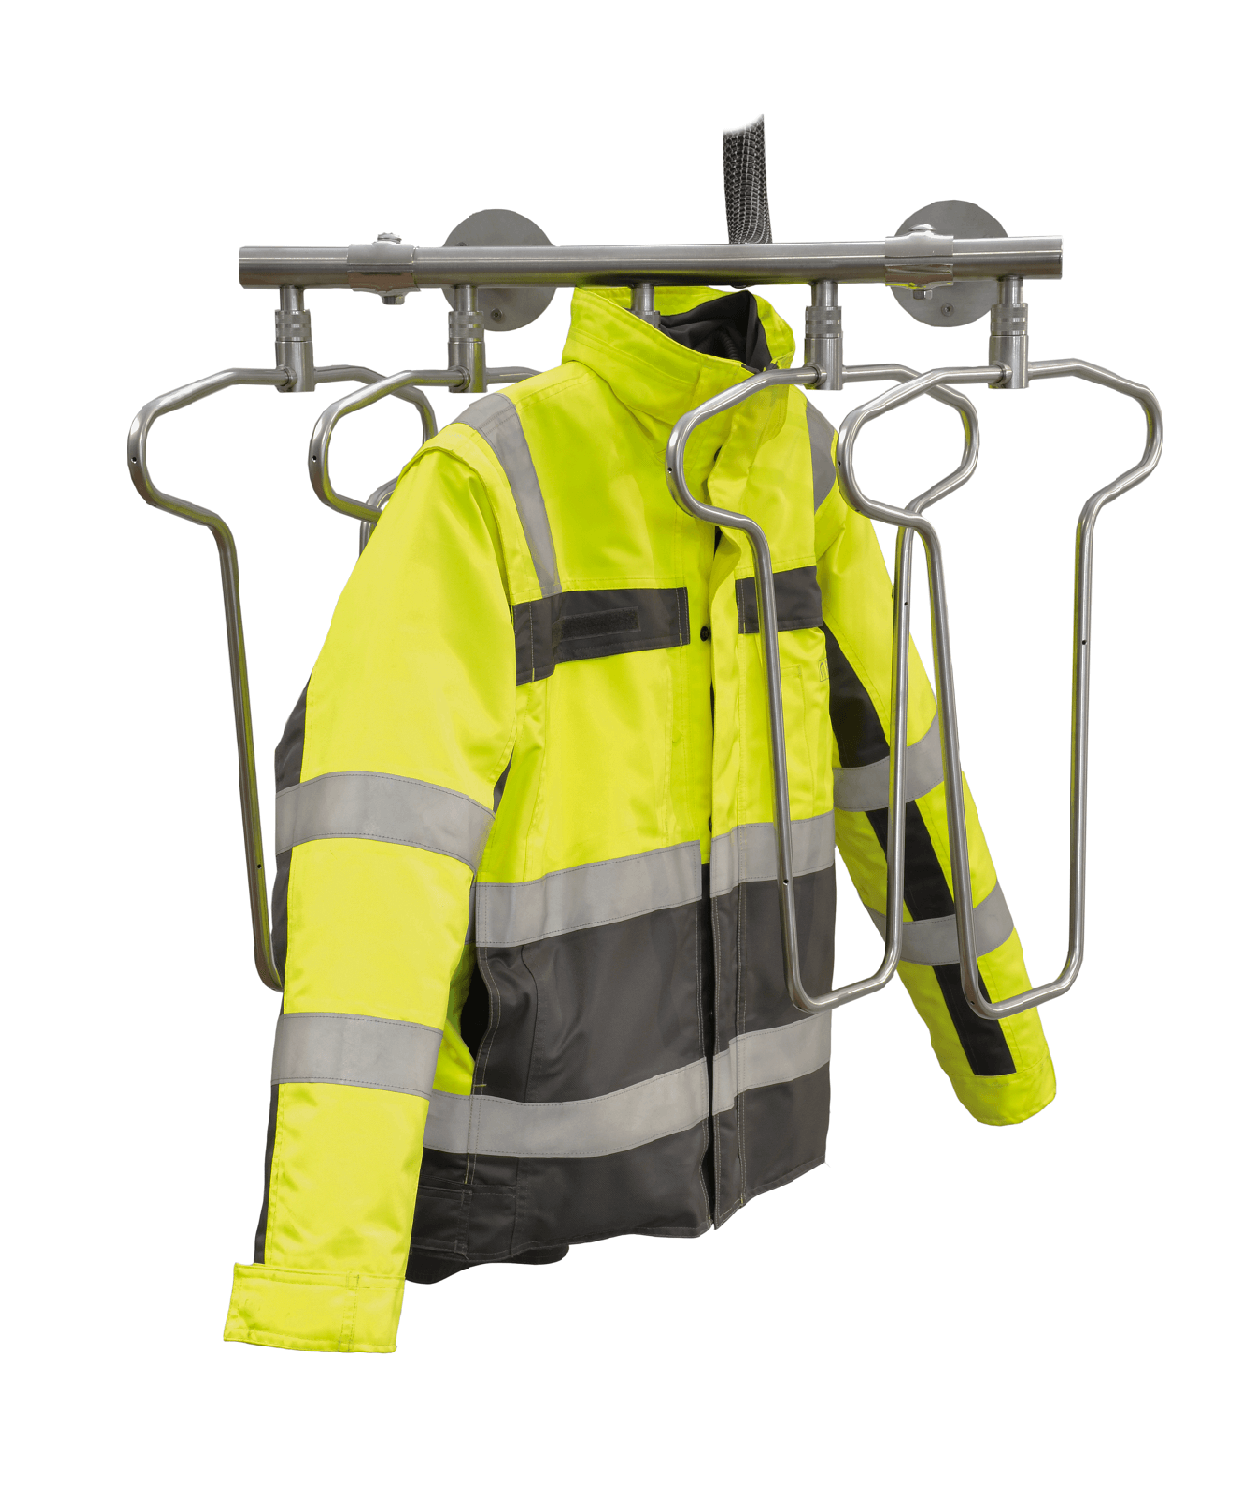 warm air drying system for work jackets